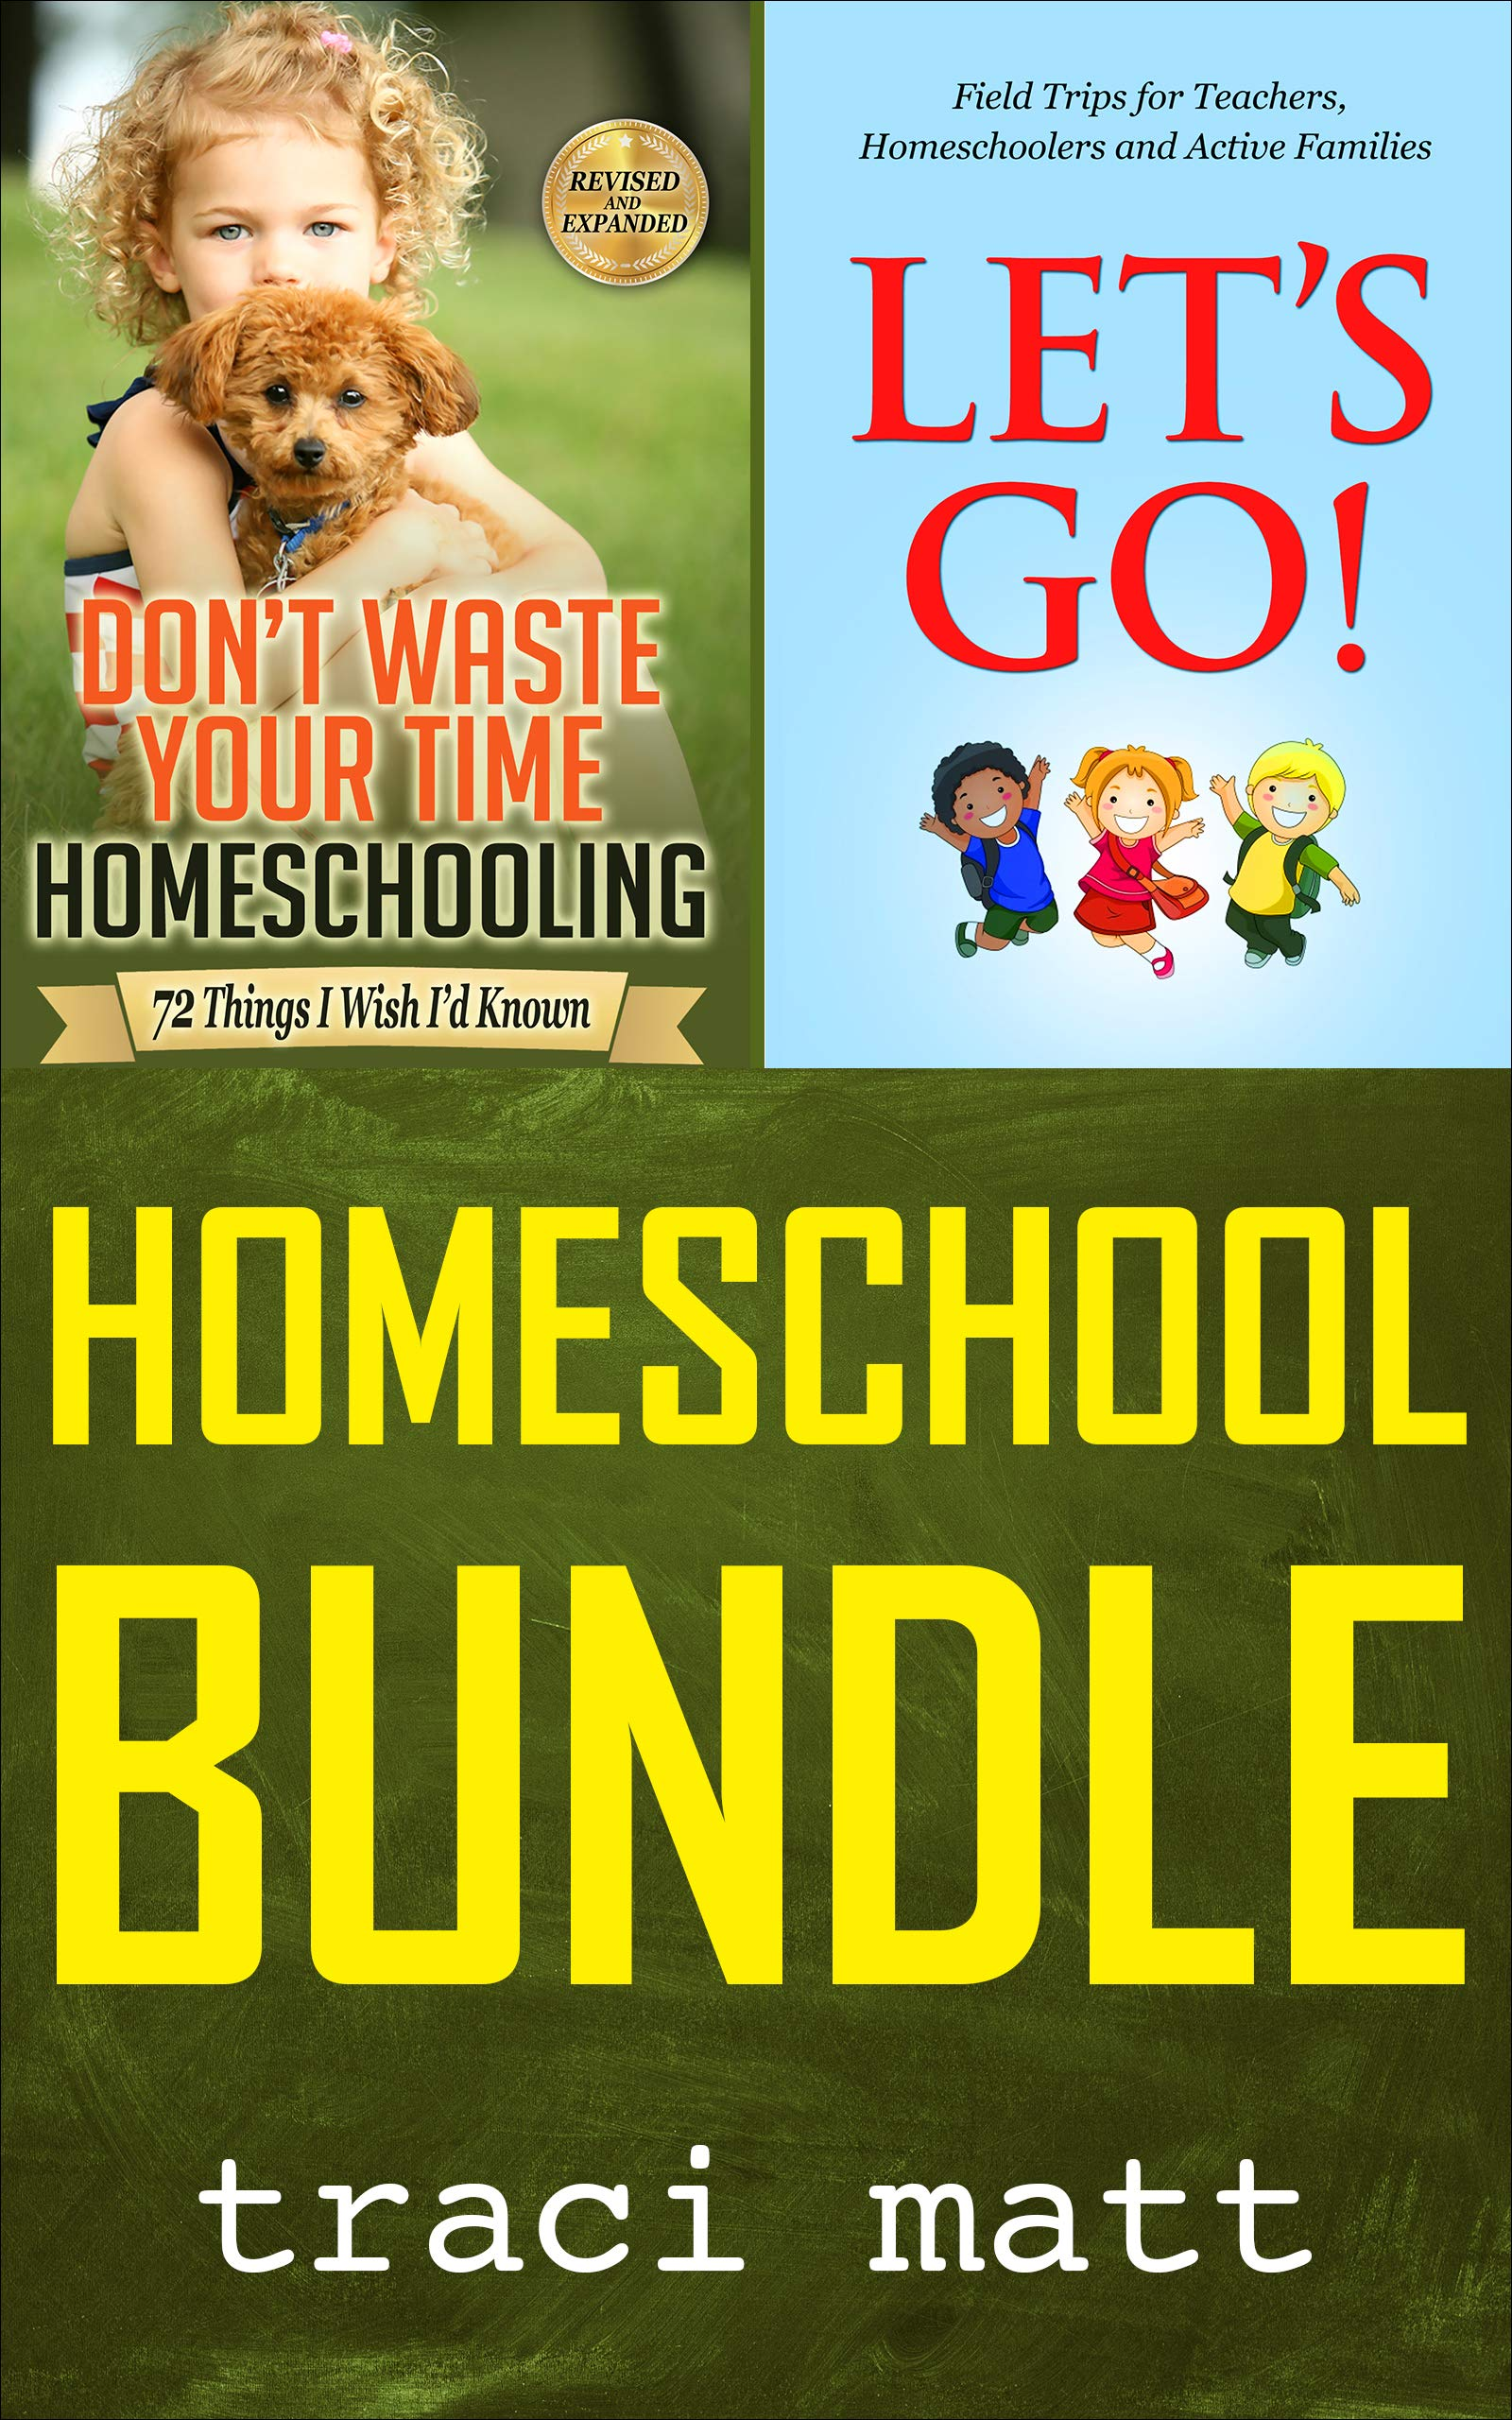 Homeschool Bundle: Don't Waste Your Time Homeschooling PLUS Let's Go! Field Trips for Teachers, Homeschoolers and Active Families